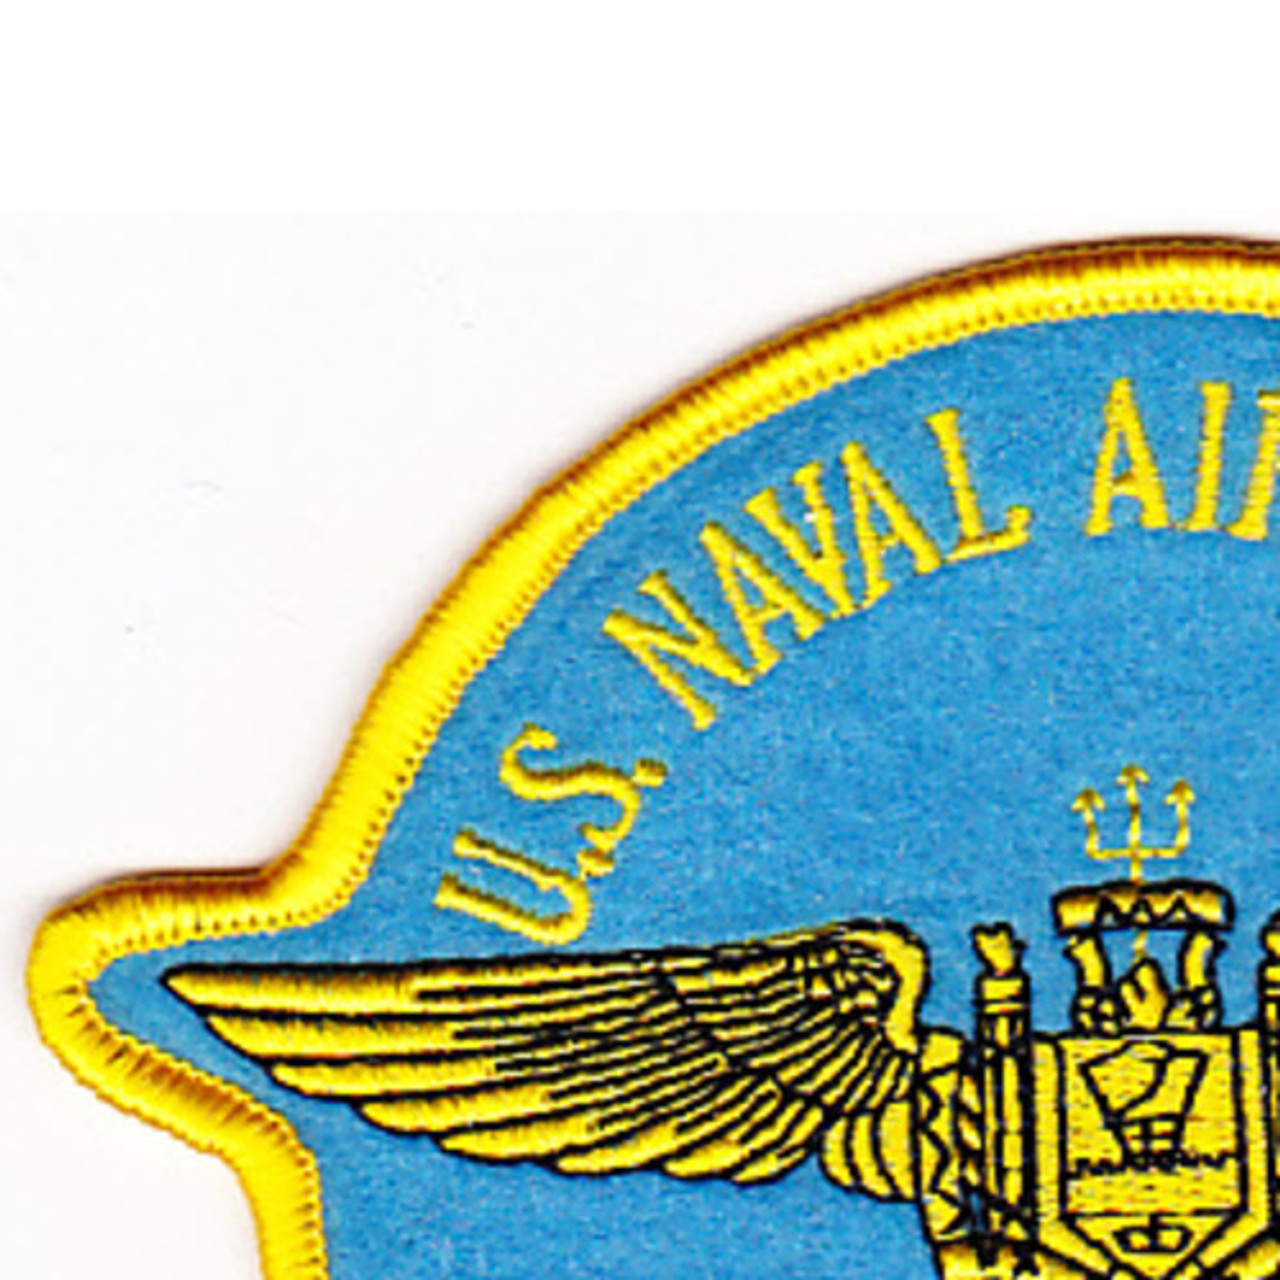 NAF Naval Air Facility NAVAL ACADEMY ANNAPOLIS MD US Navy Base Squadron Patch